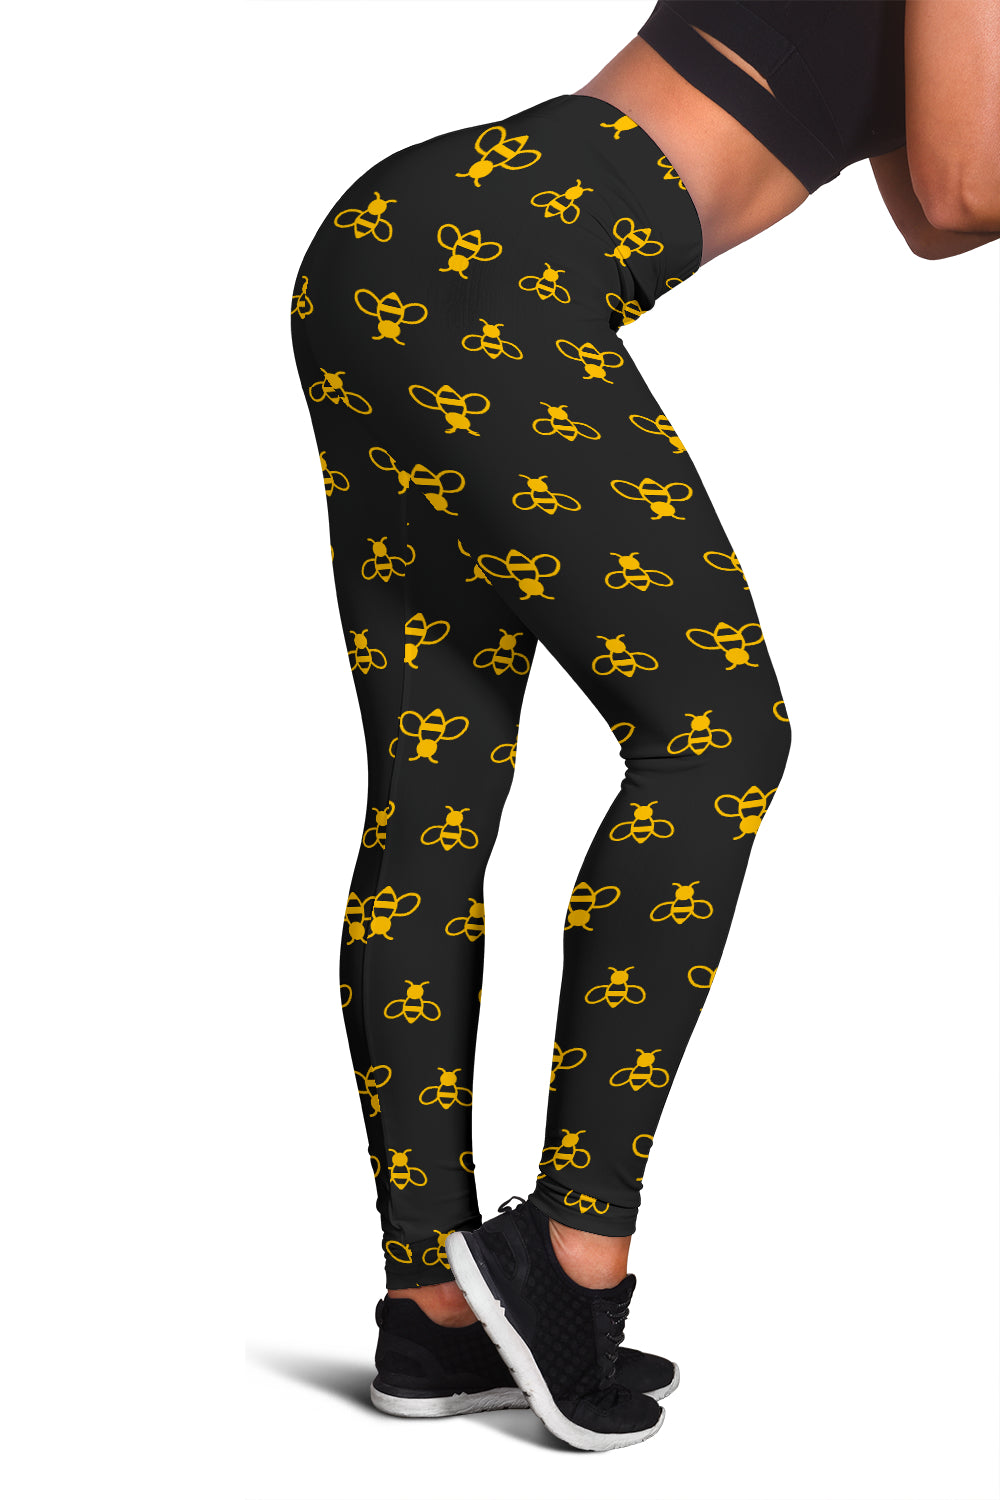 Honey Bee Women's Leggings